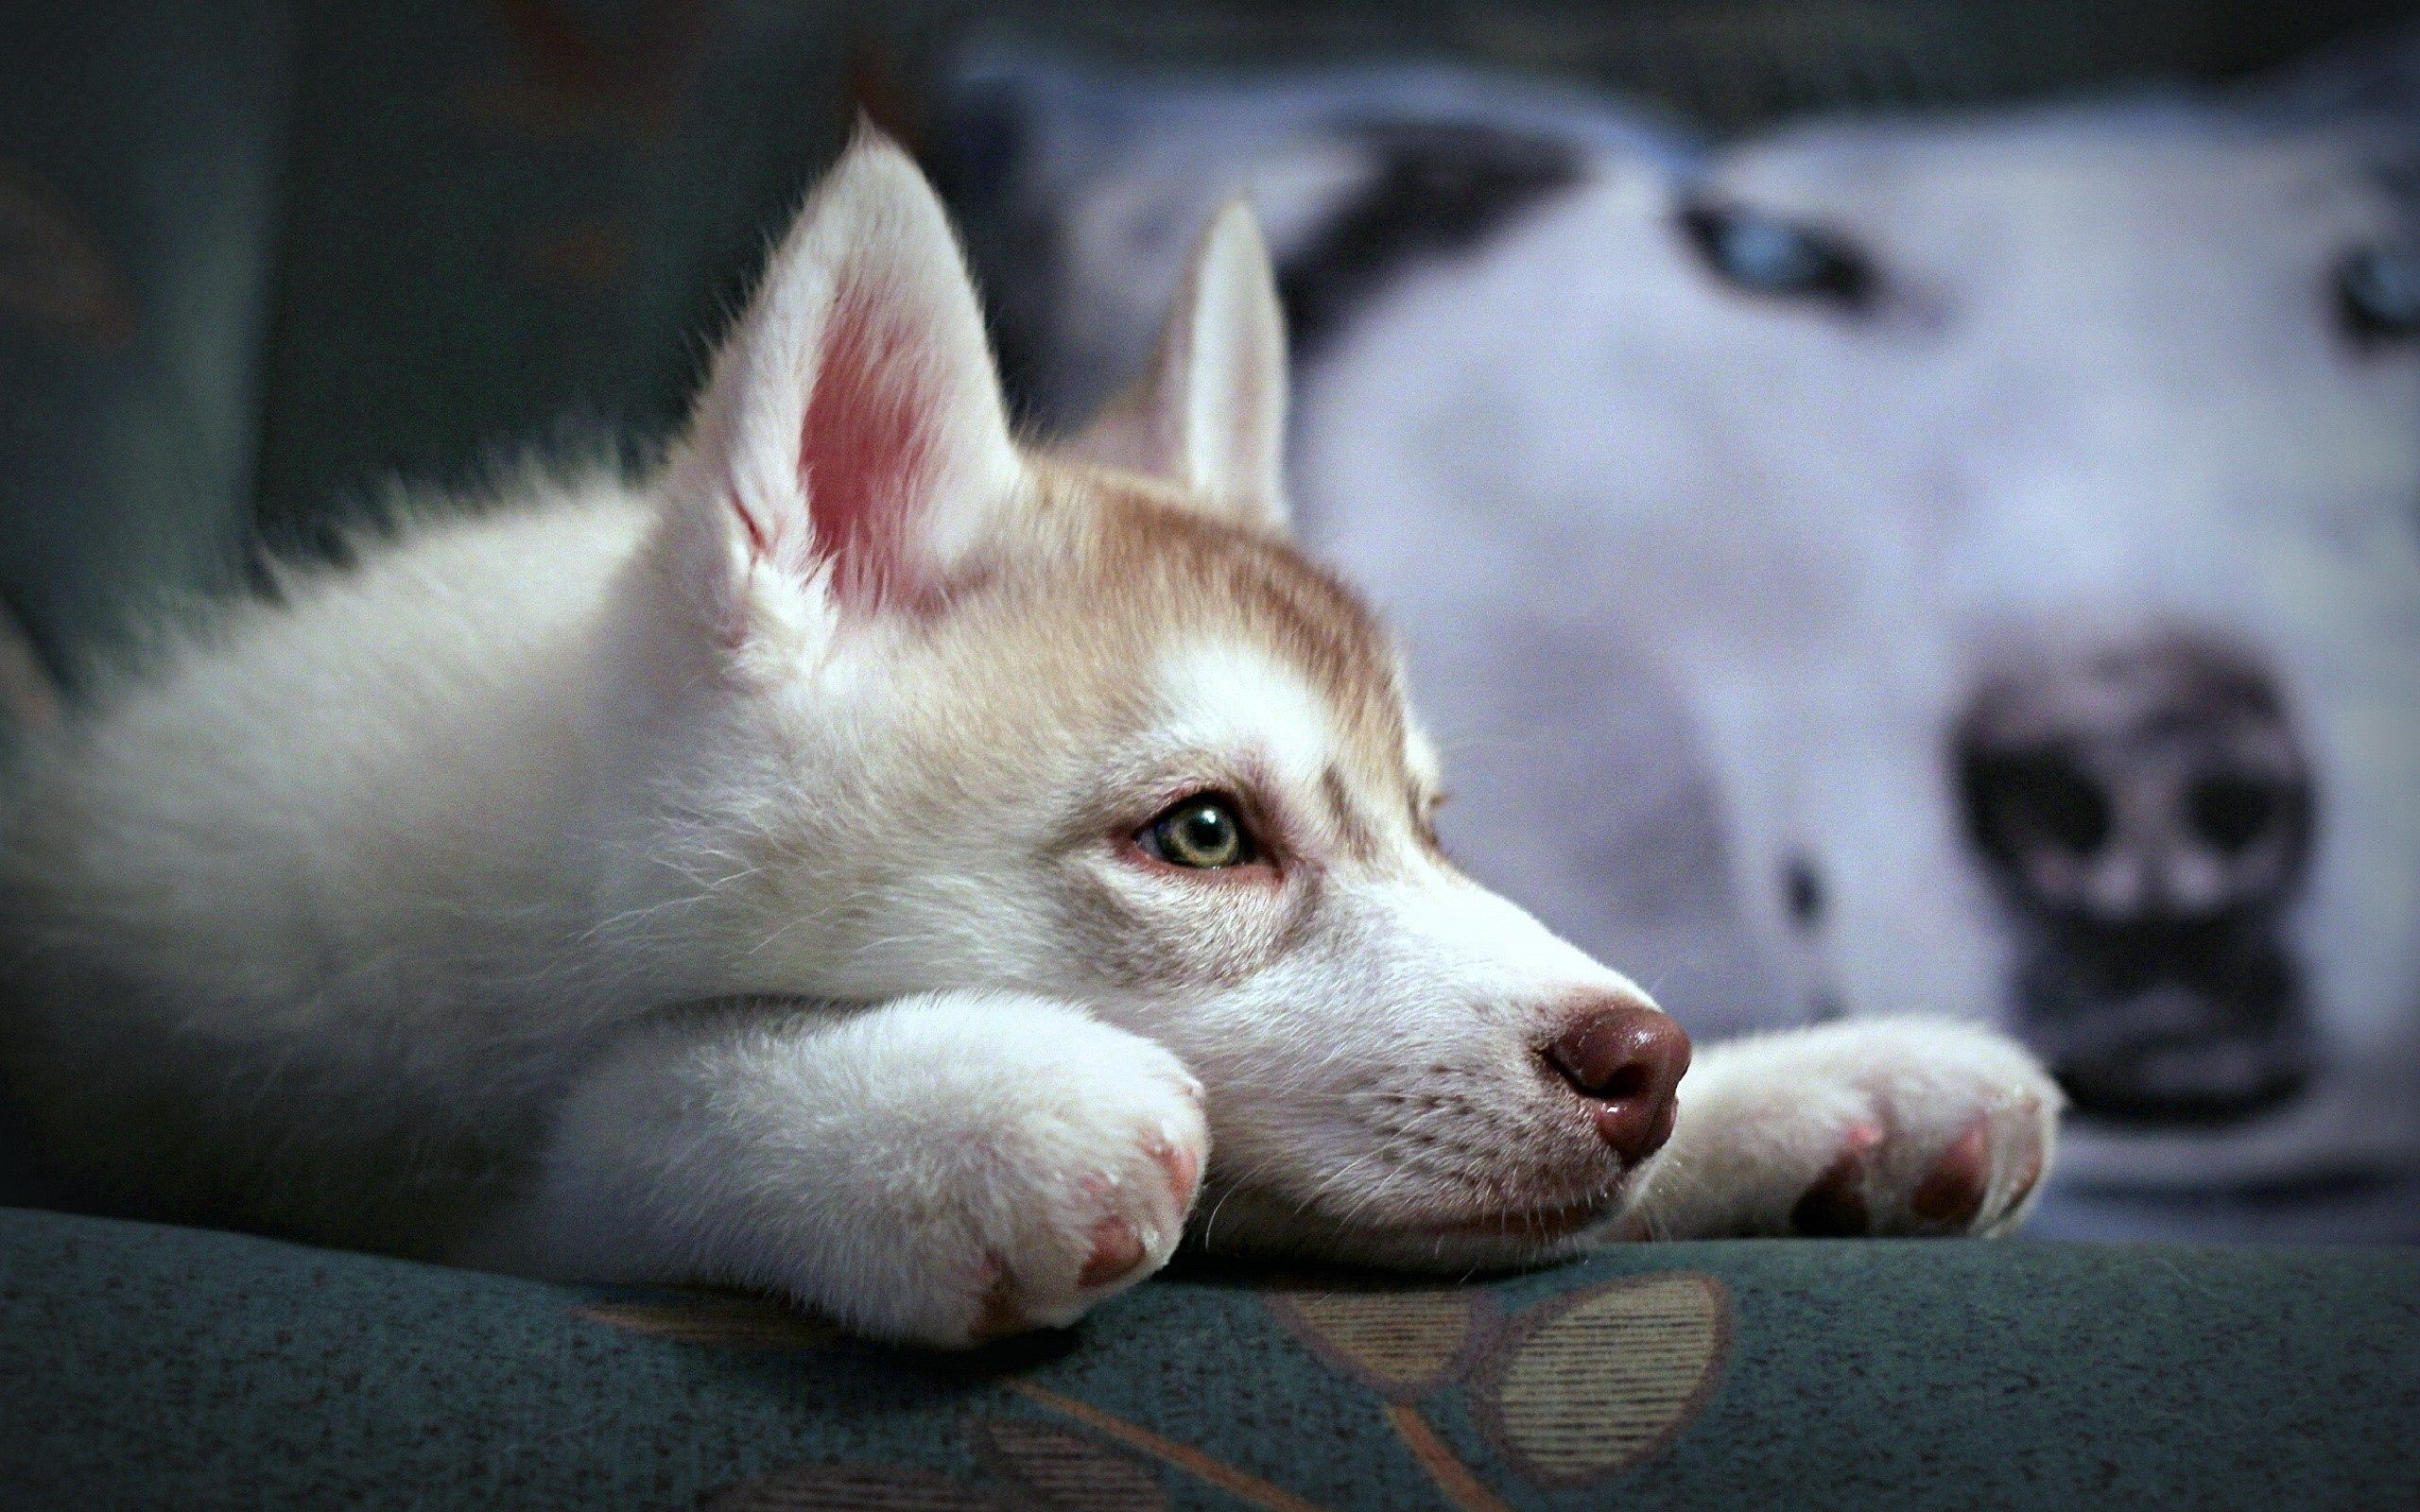 157365 download wallpaper Animals, Puppy, Husky, Haska, Sadness, Sorrow, Expectation, Waiting, Fidelity, Muzzle screensavers and pictures for free